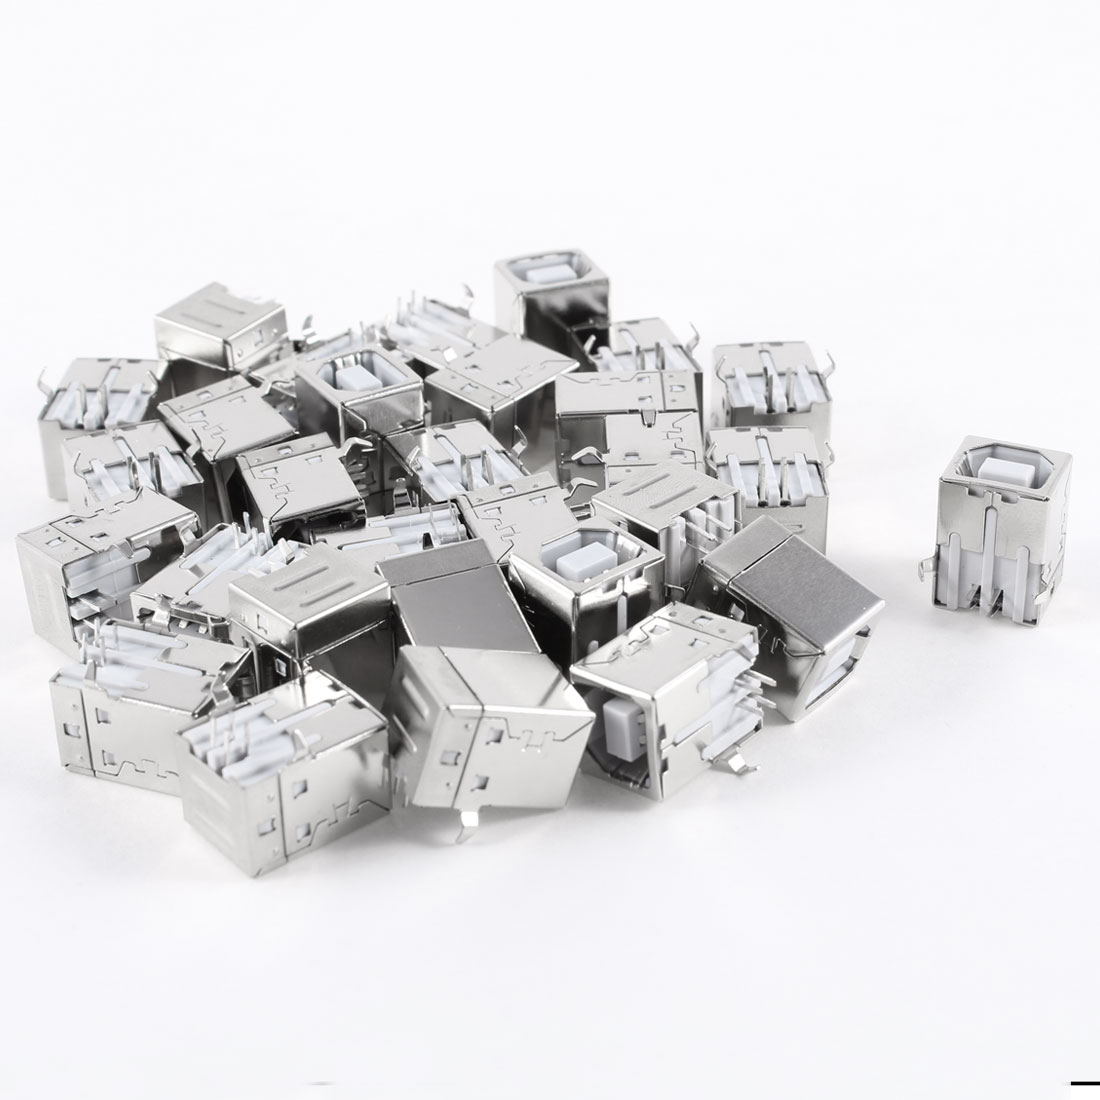 30 Pcs USB Female Type-B Jack 4-Pin 90 Degree PCB DIP Socket Connector